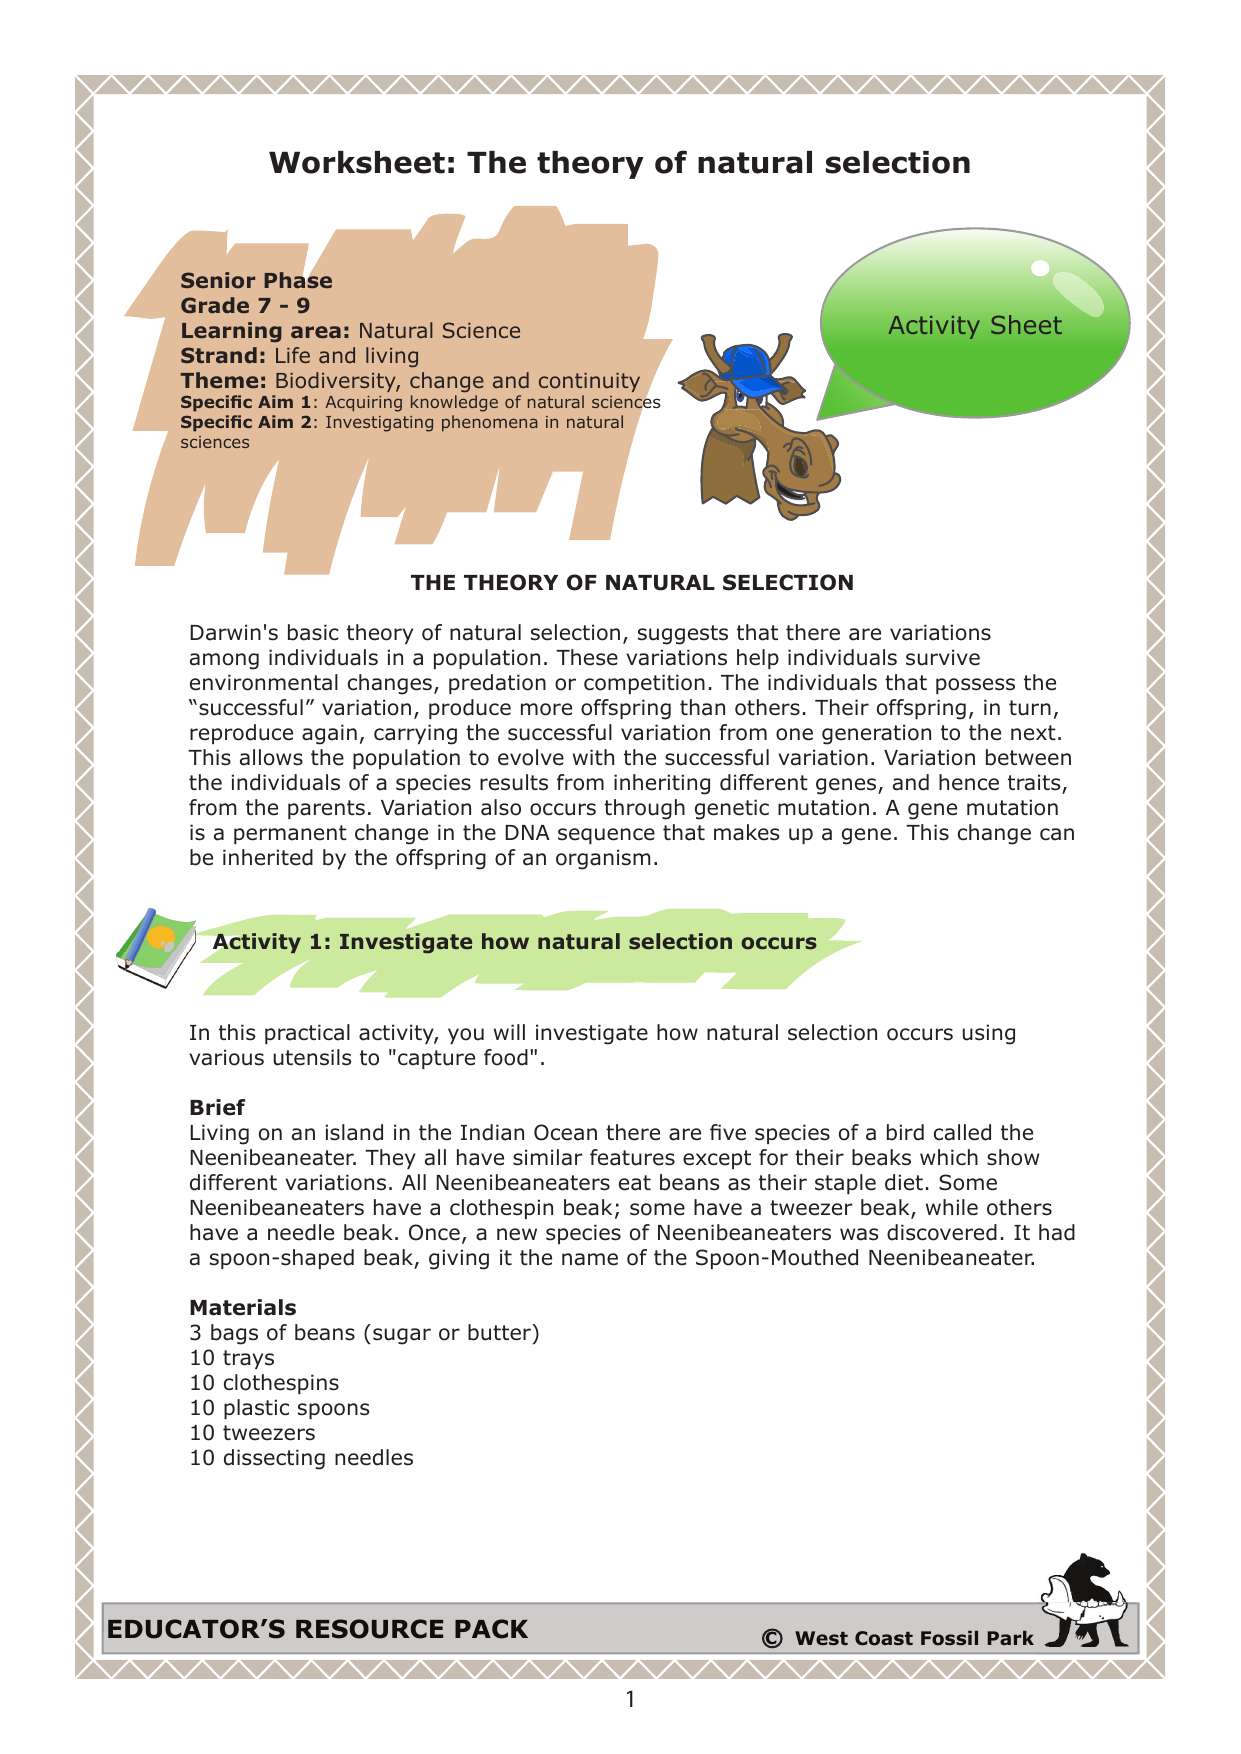 Worksheet The theory of natural selection – Natural Selection Worksheet